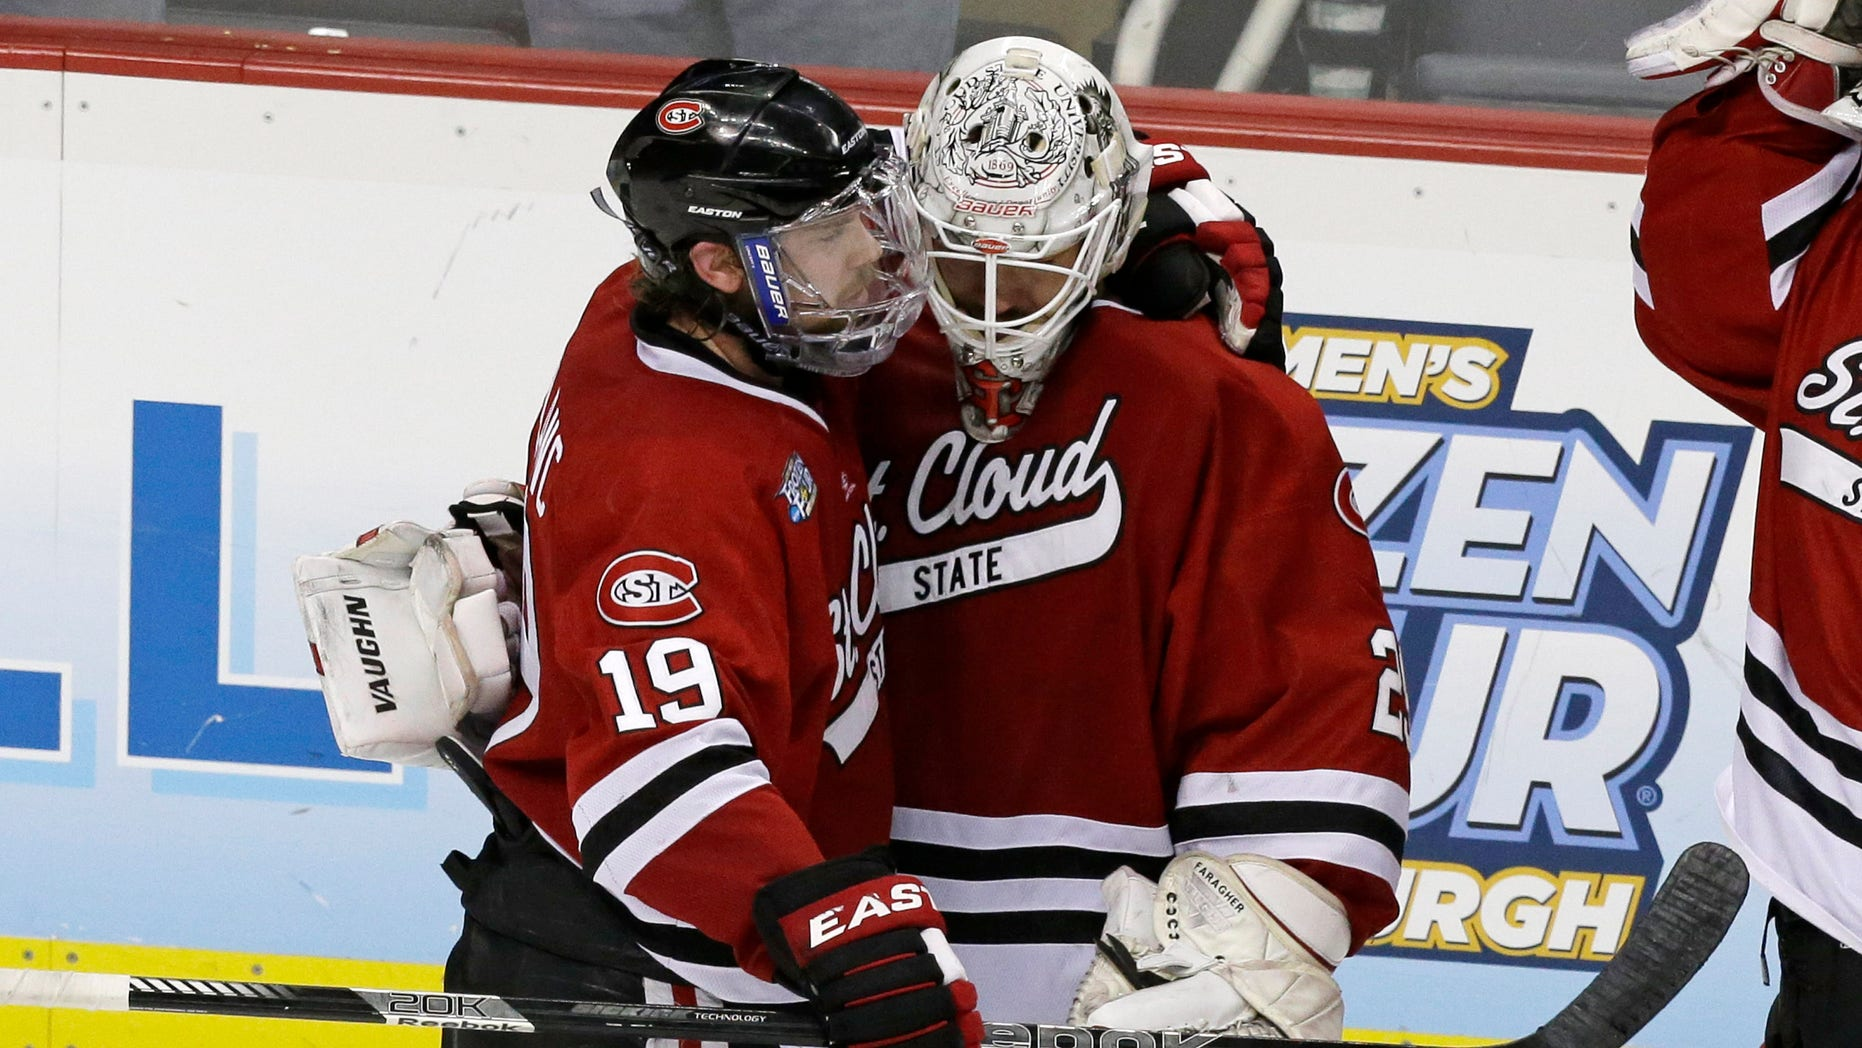 St. Cloud State goalie Ryan Faragher, right, is hugged by Drew LeBlanc (19) after losing 4-1 to Quinnipiac in an NCAA college hockey Frozen Four semifinal game in Pittsburgh, Thursday, April 11, 2013. Quinnipiac faces Yale in the national championship game on Saturday. (AP Photo/Gene J. Puskar)